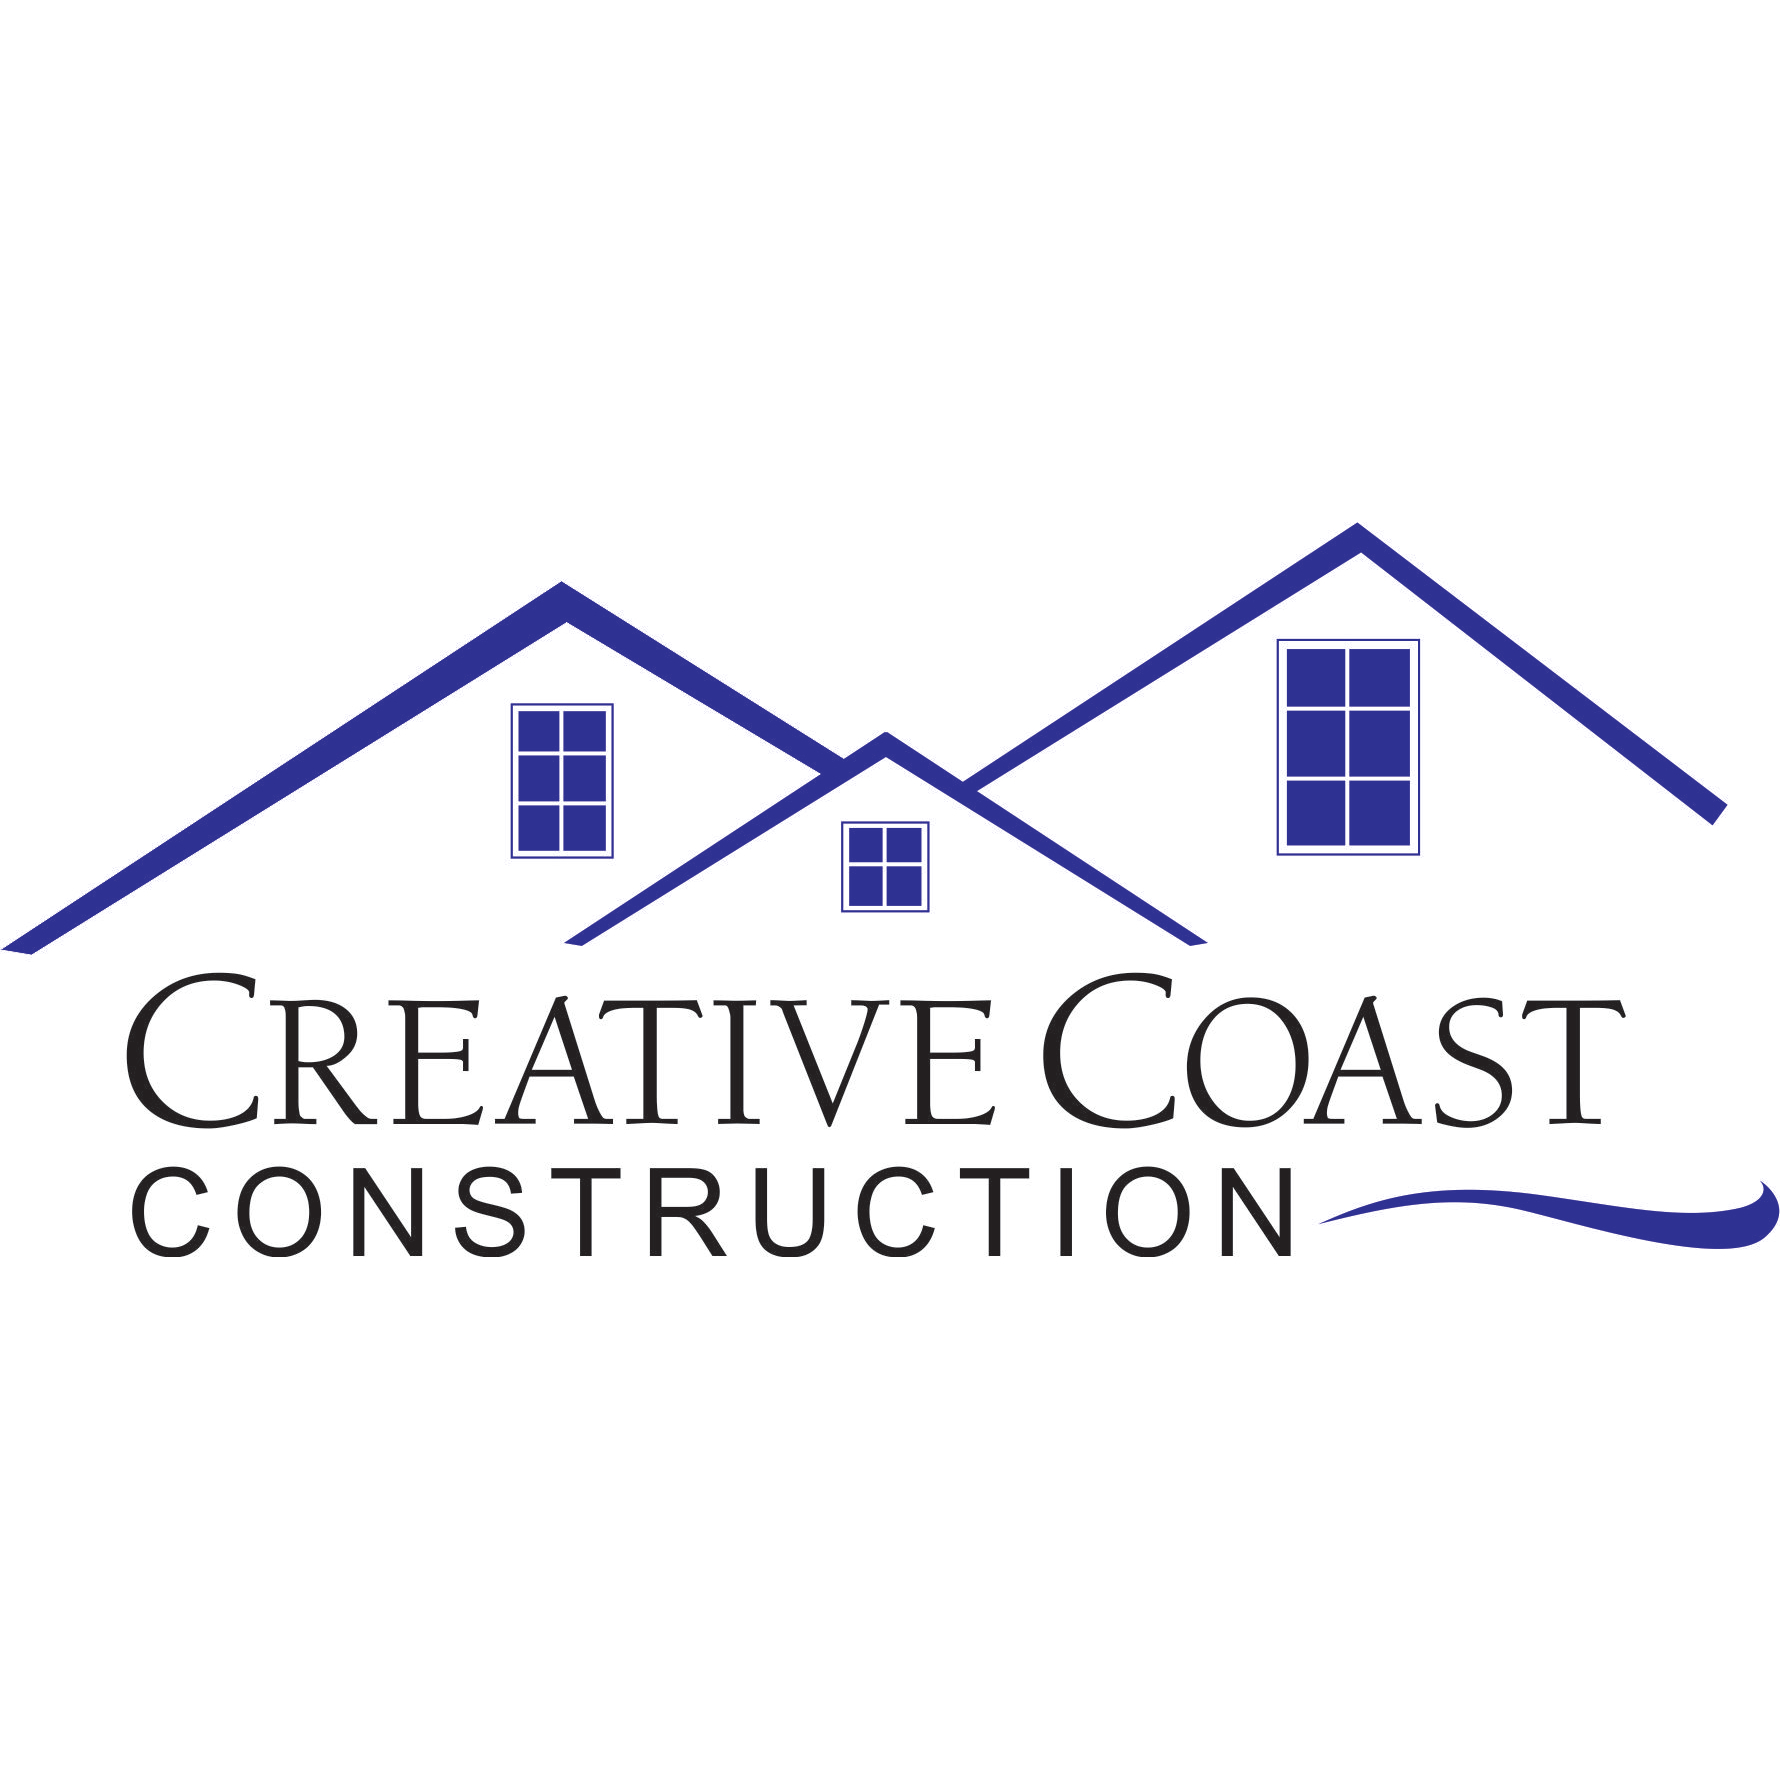 Creative Coast Construction